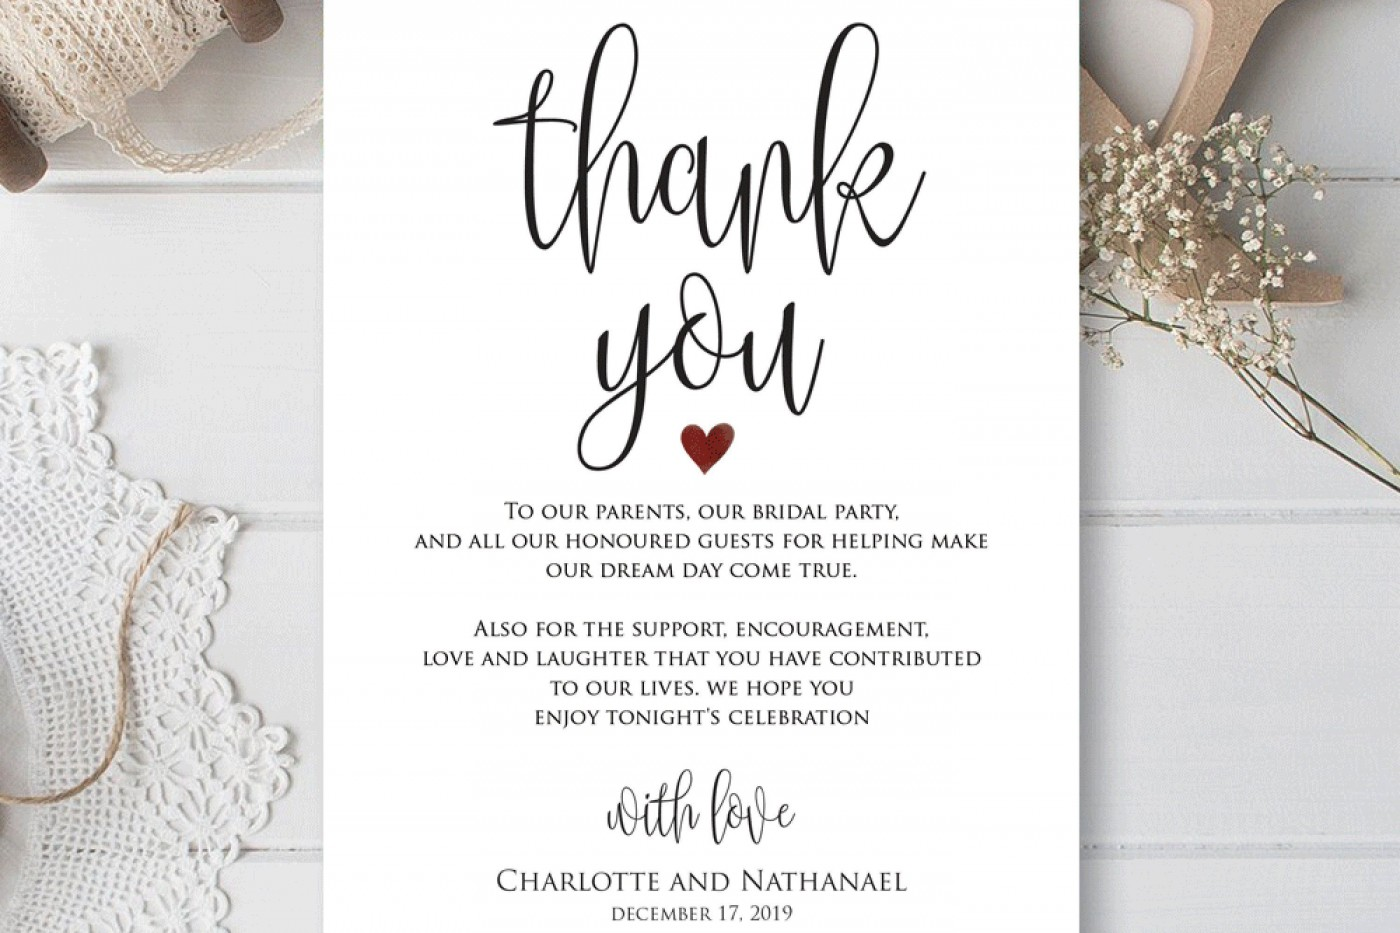 000 Remarkable Thank You Card Template Idea  Wedding Busines Word Free1400